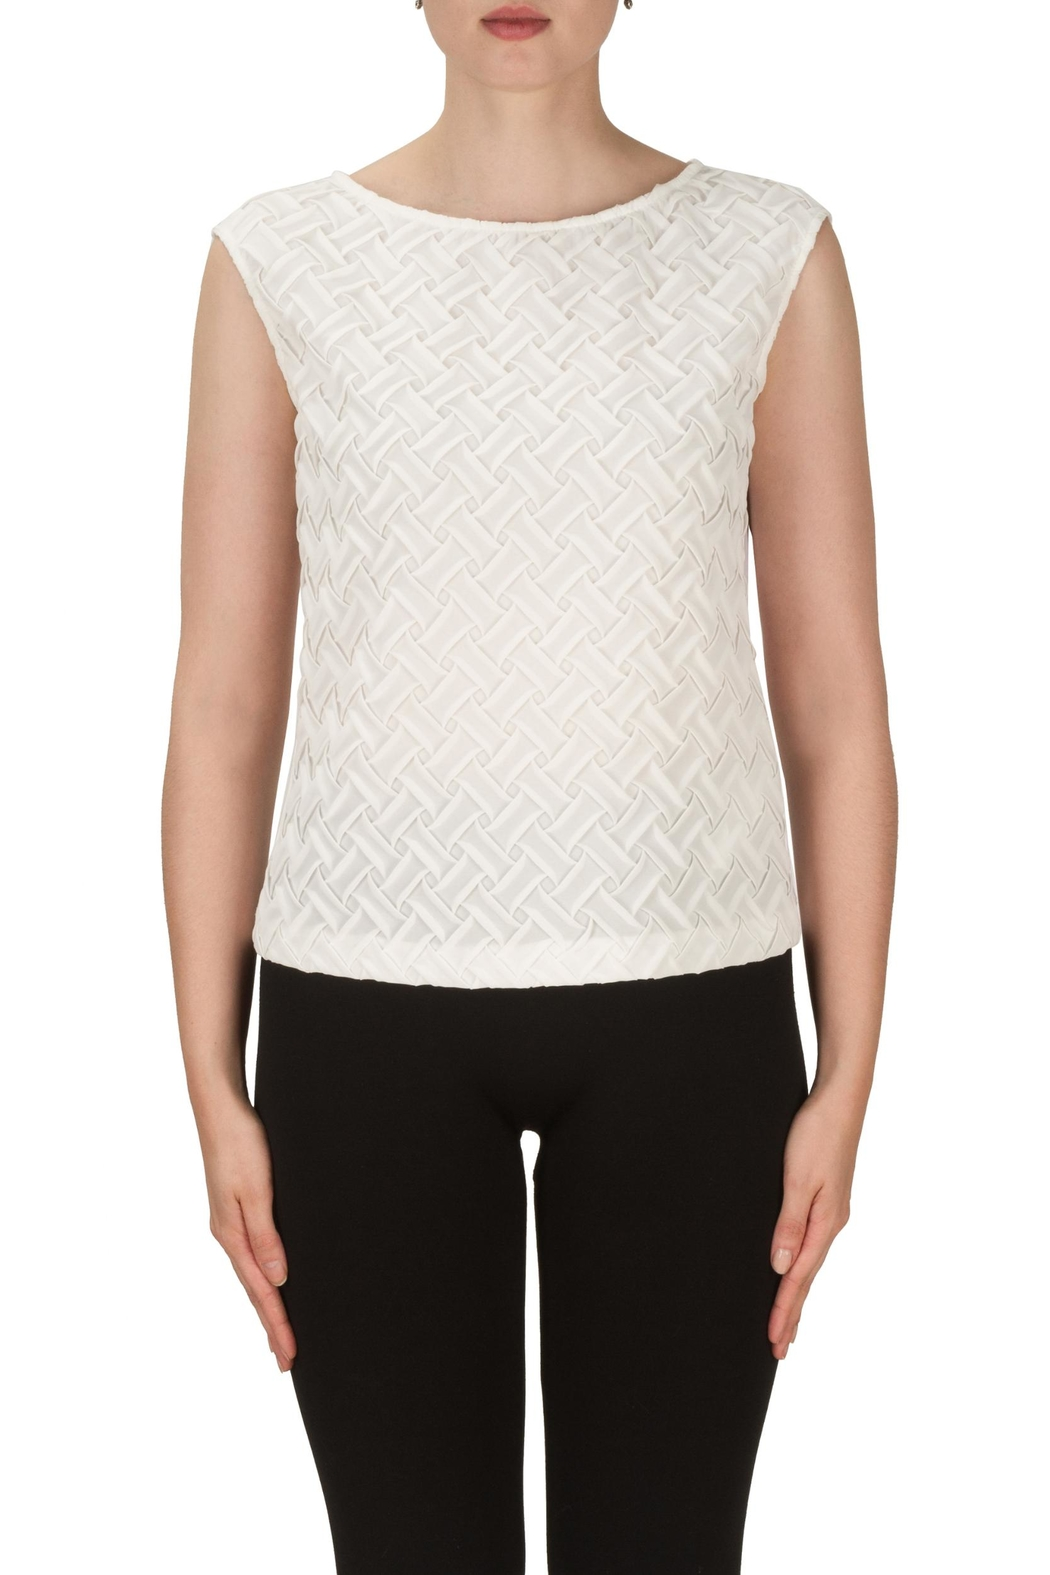 Joseph Ribkoff Basket Weave Tank Top - Front Cropped Image